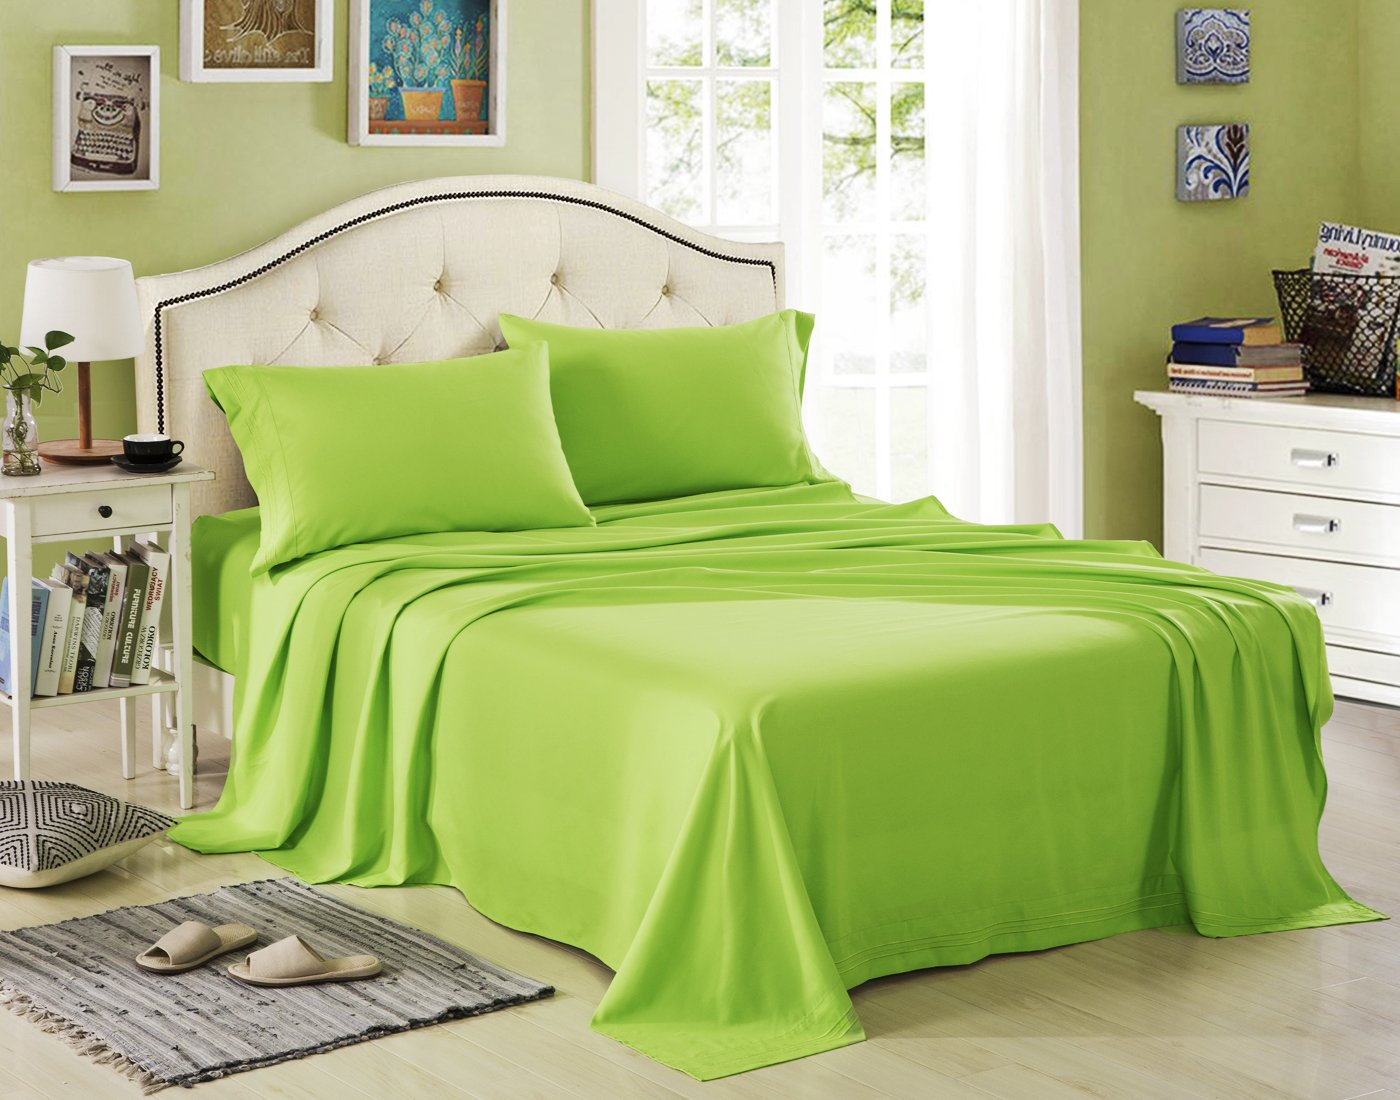 Honeymoon 1800 Brushed Microfiber Embroidered Bed Sheet Set, Ultra Soft,  Twin   Lime Green